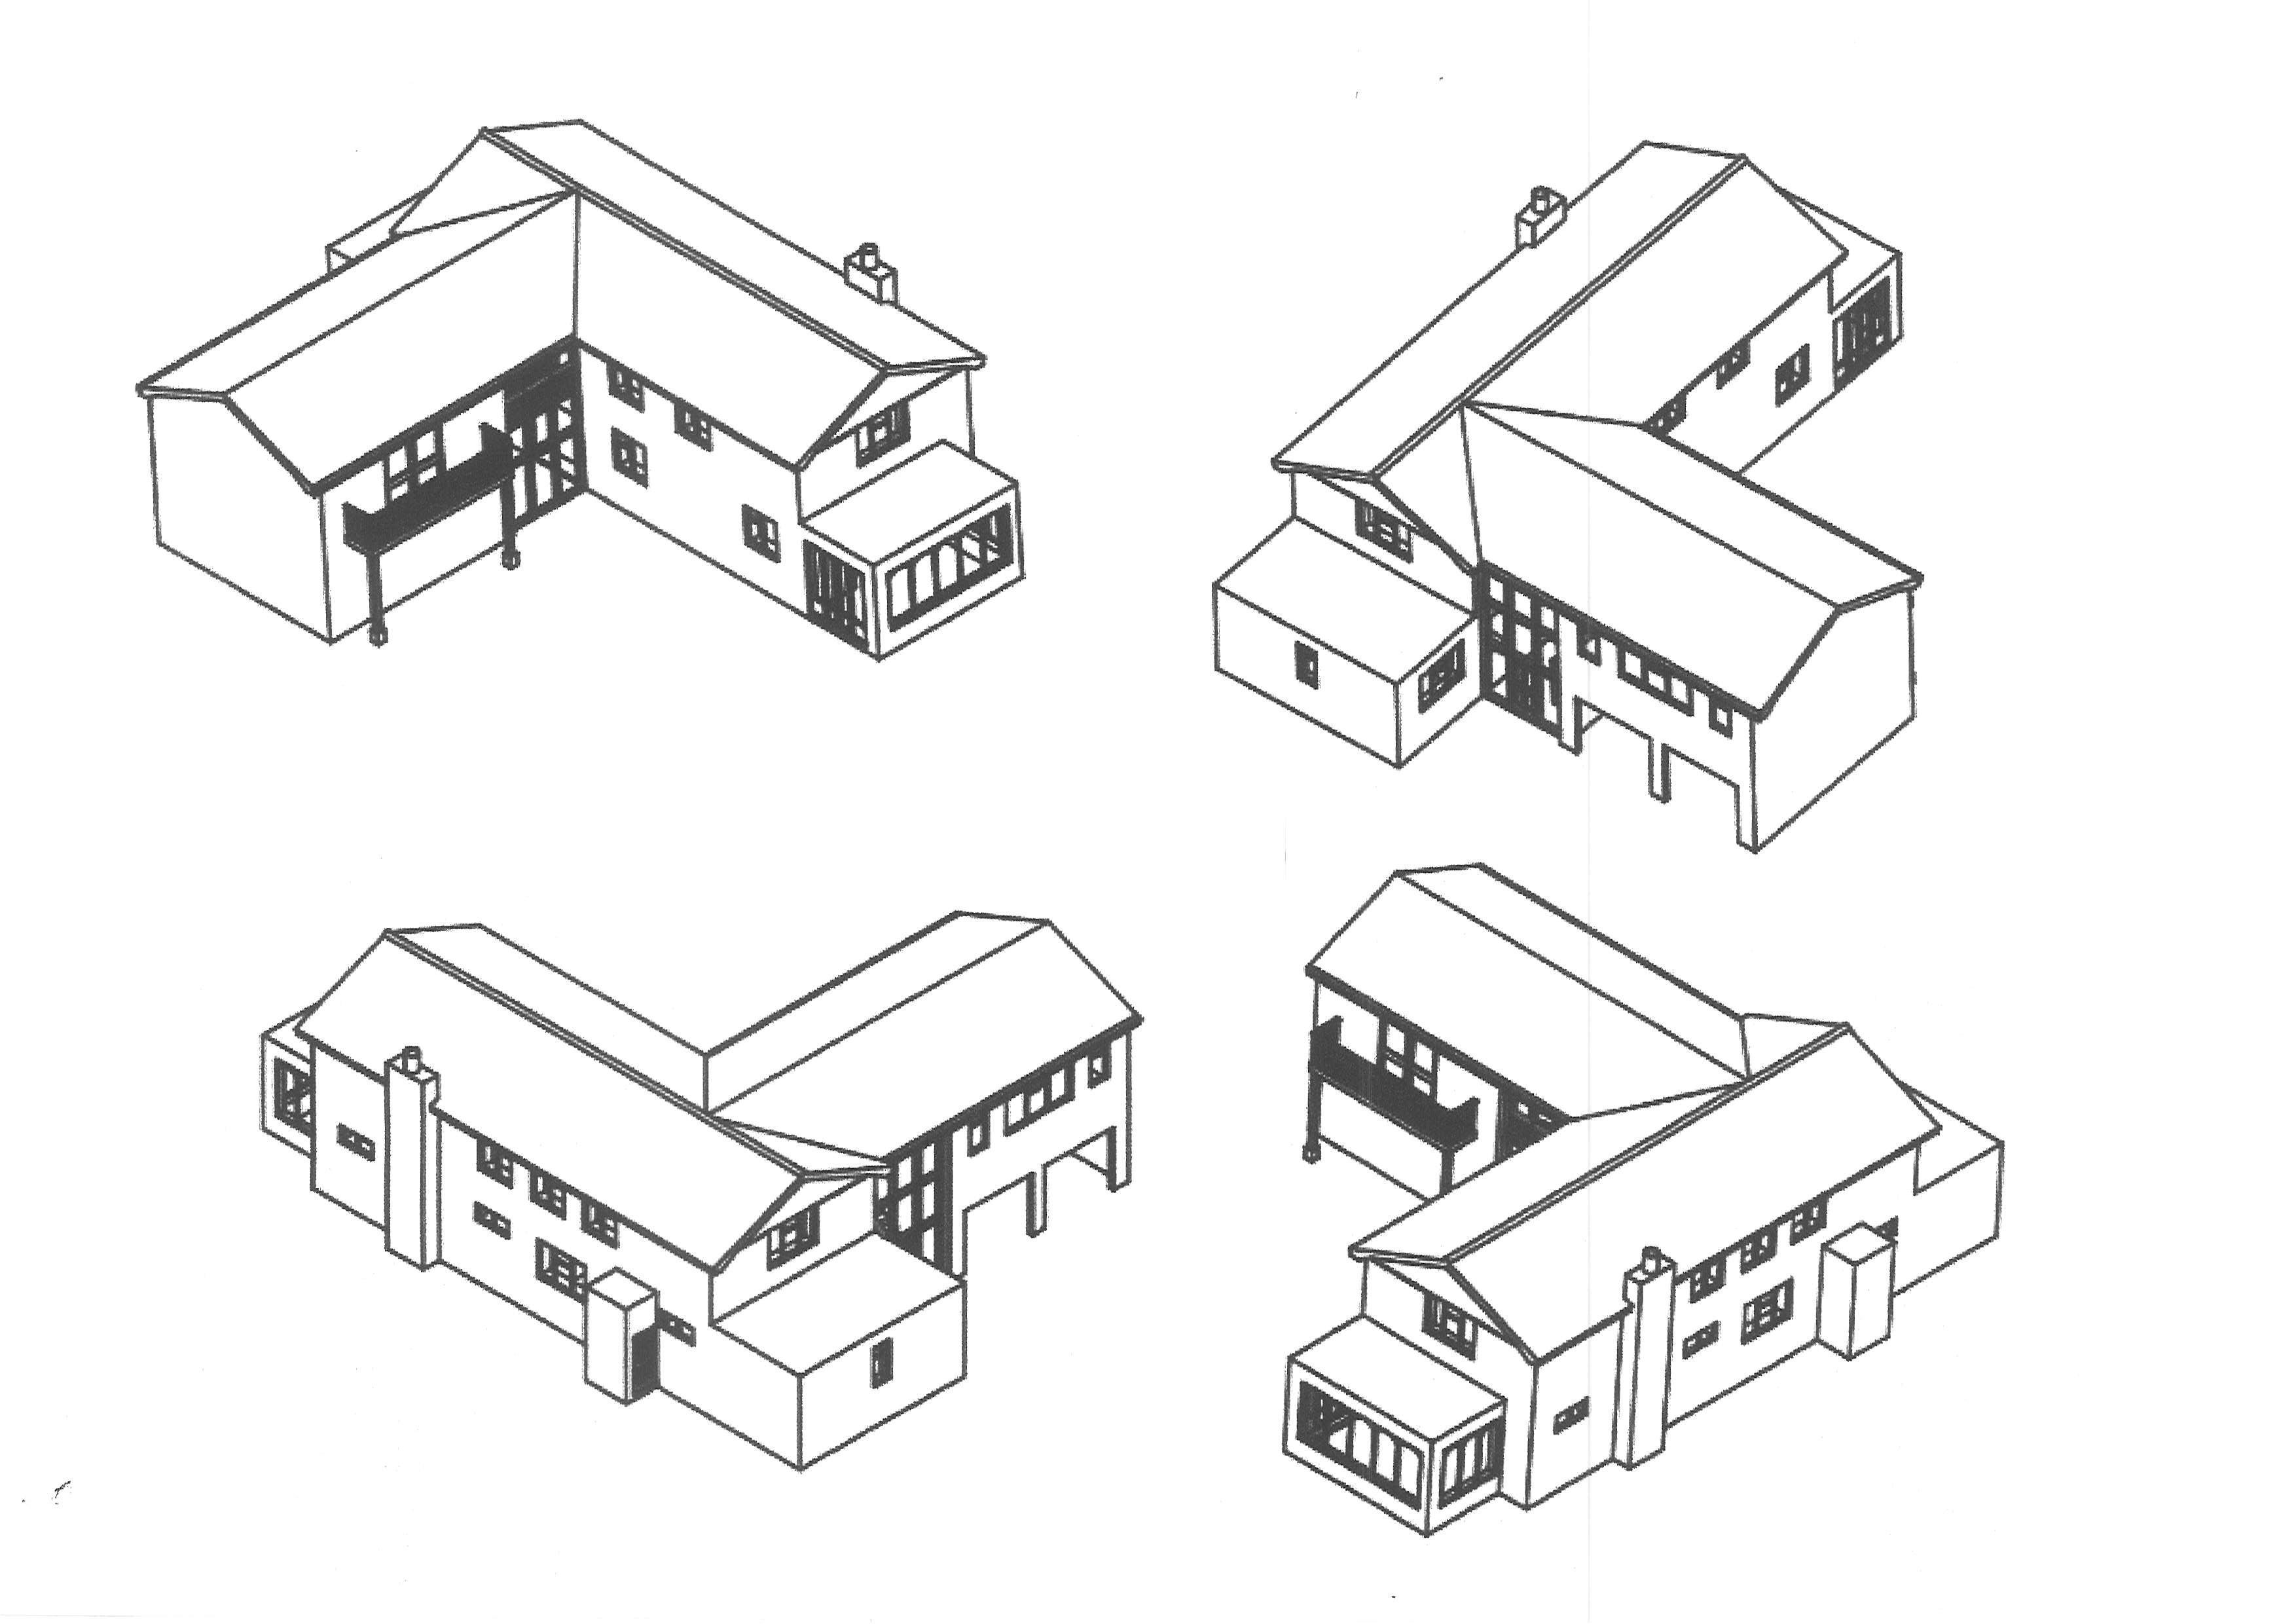 Proposed Extension Perspectives